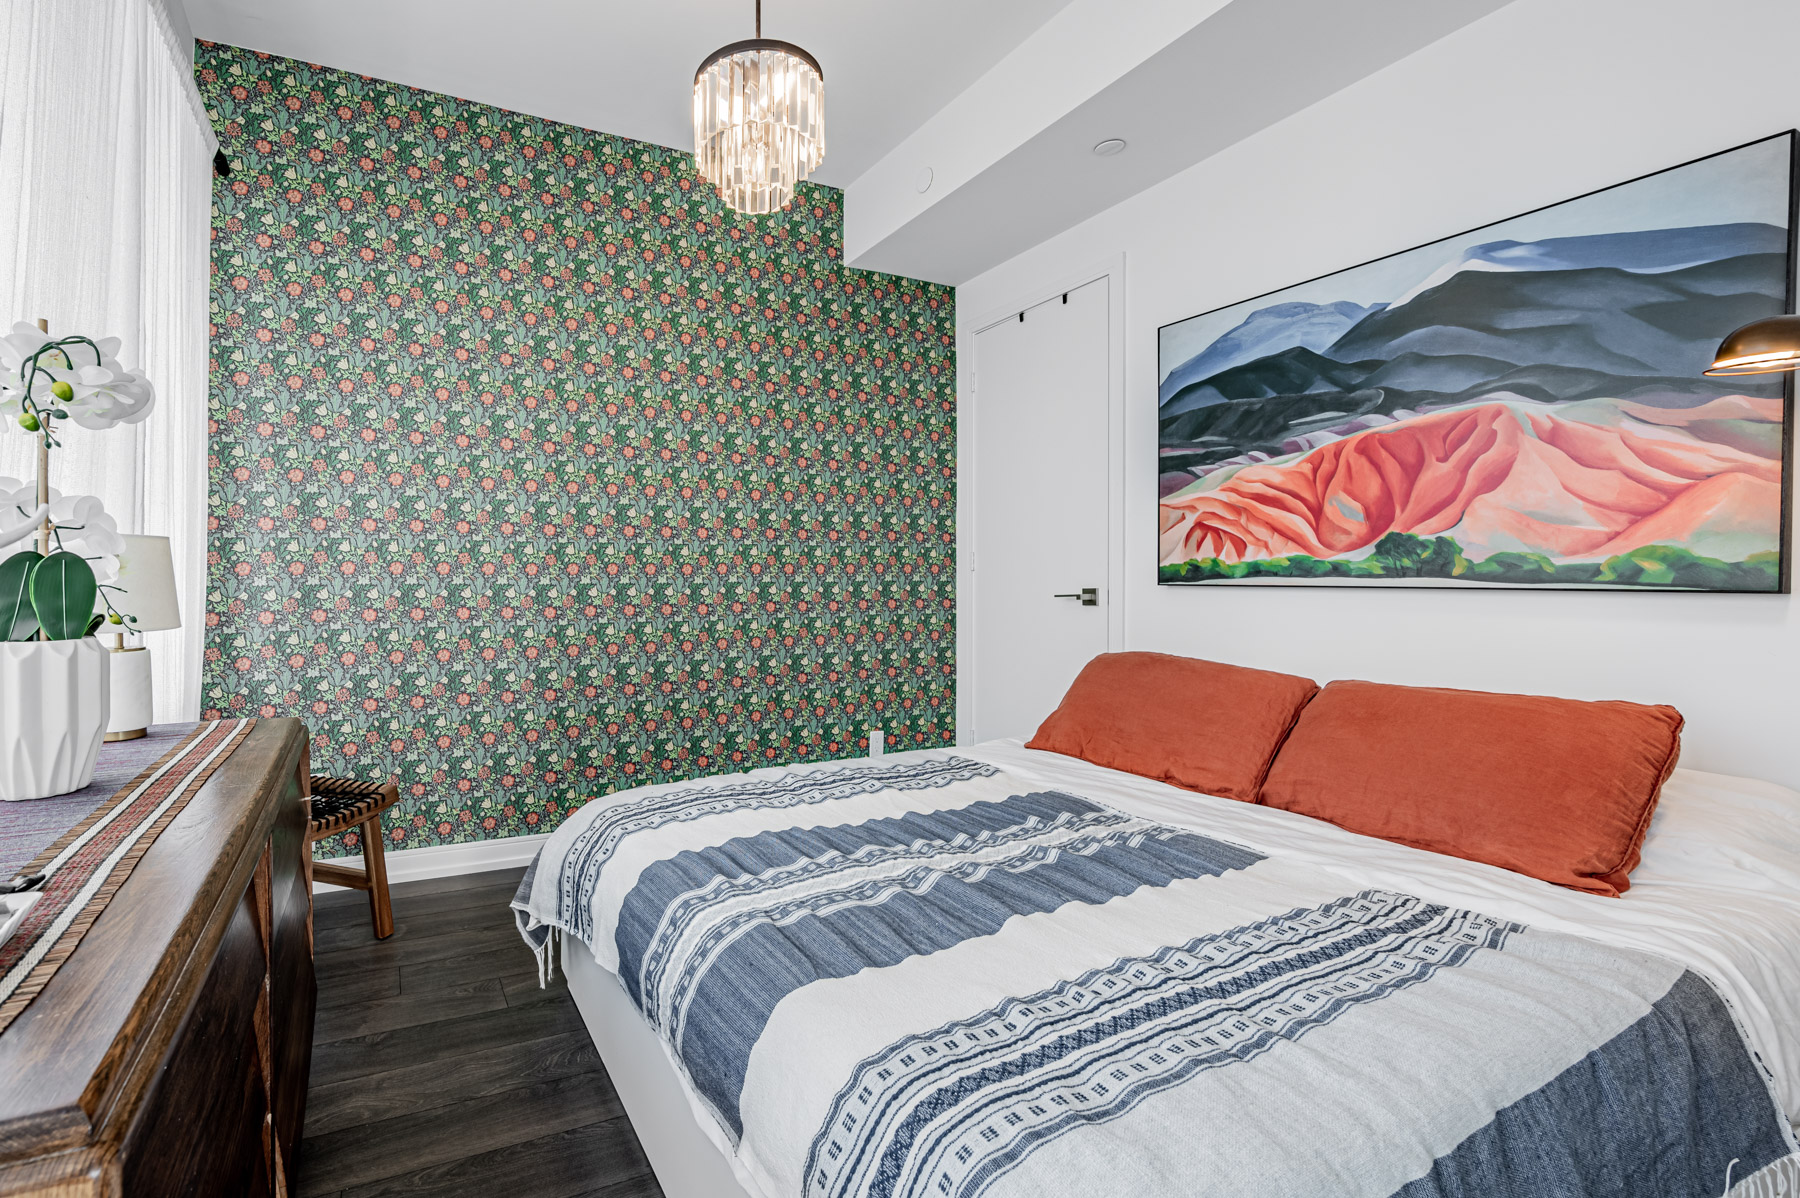 28 Wellesley St Suite 3009 – large master bedroom with chandelier and intricate wallpaper.